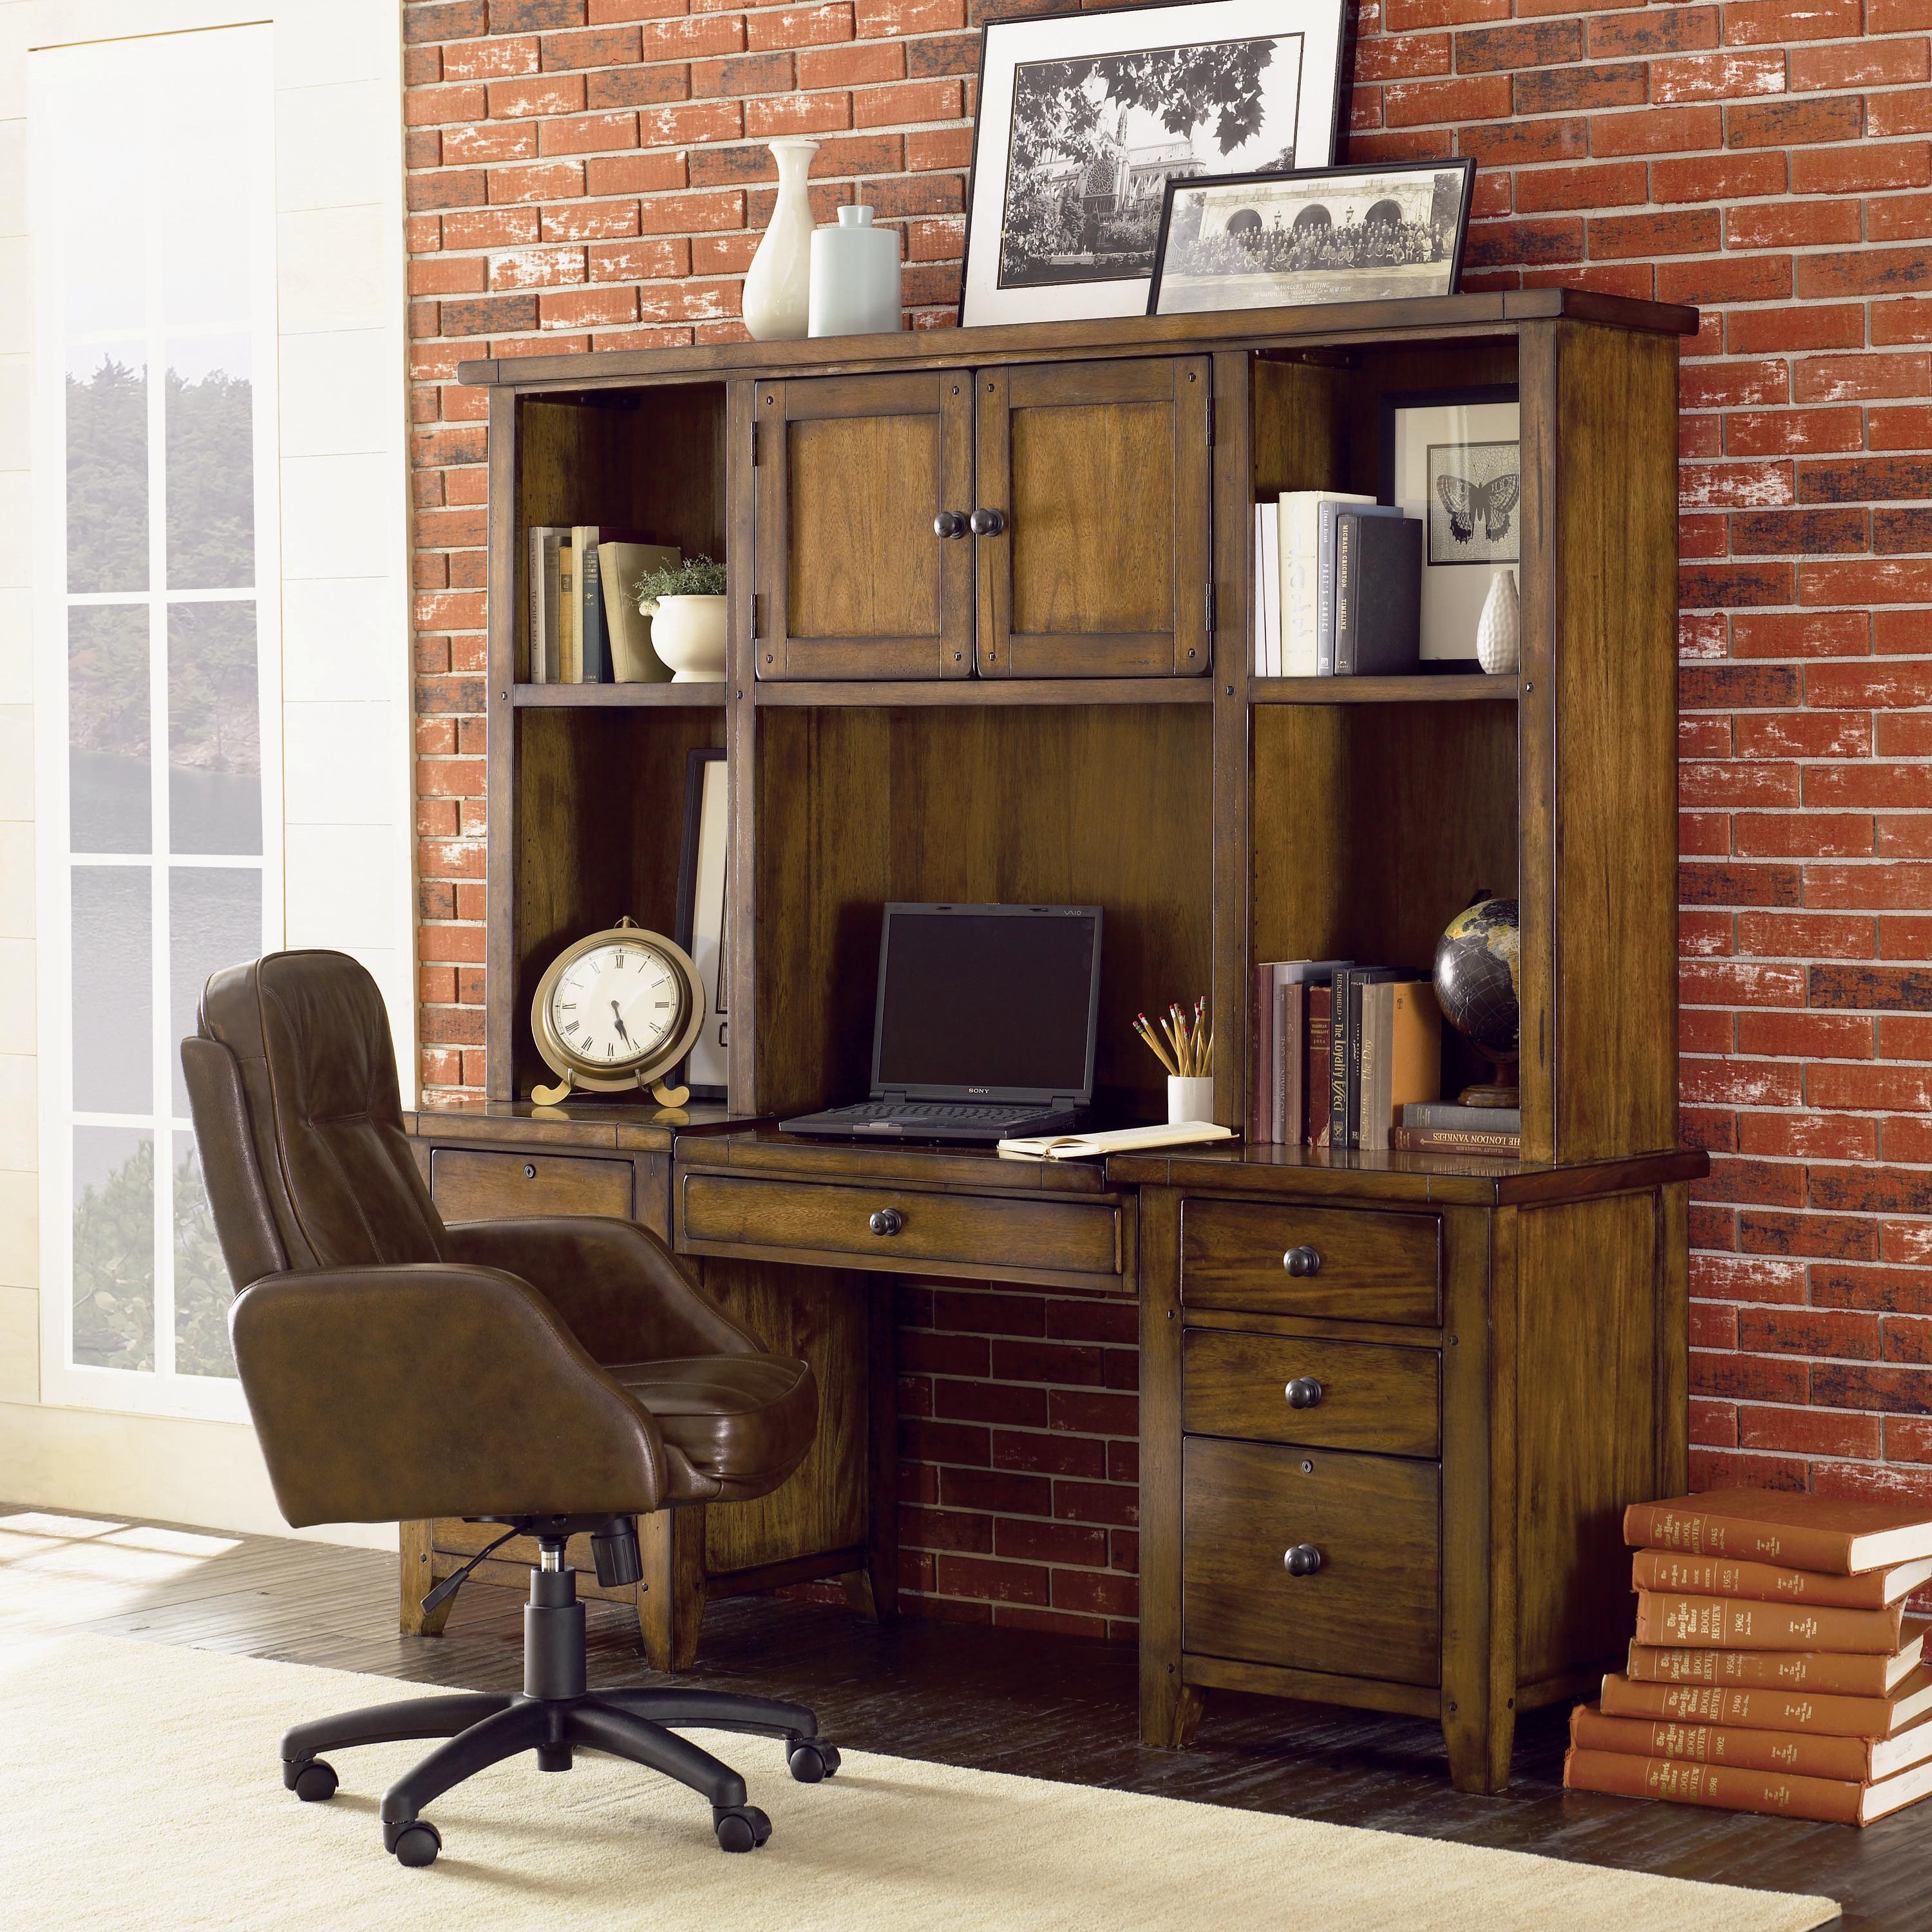 l shape shaped encouraging of desk hutch decorative with